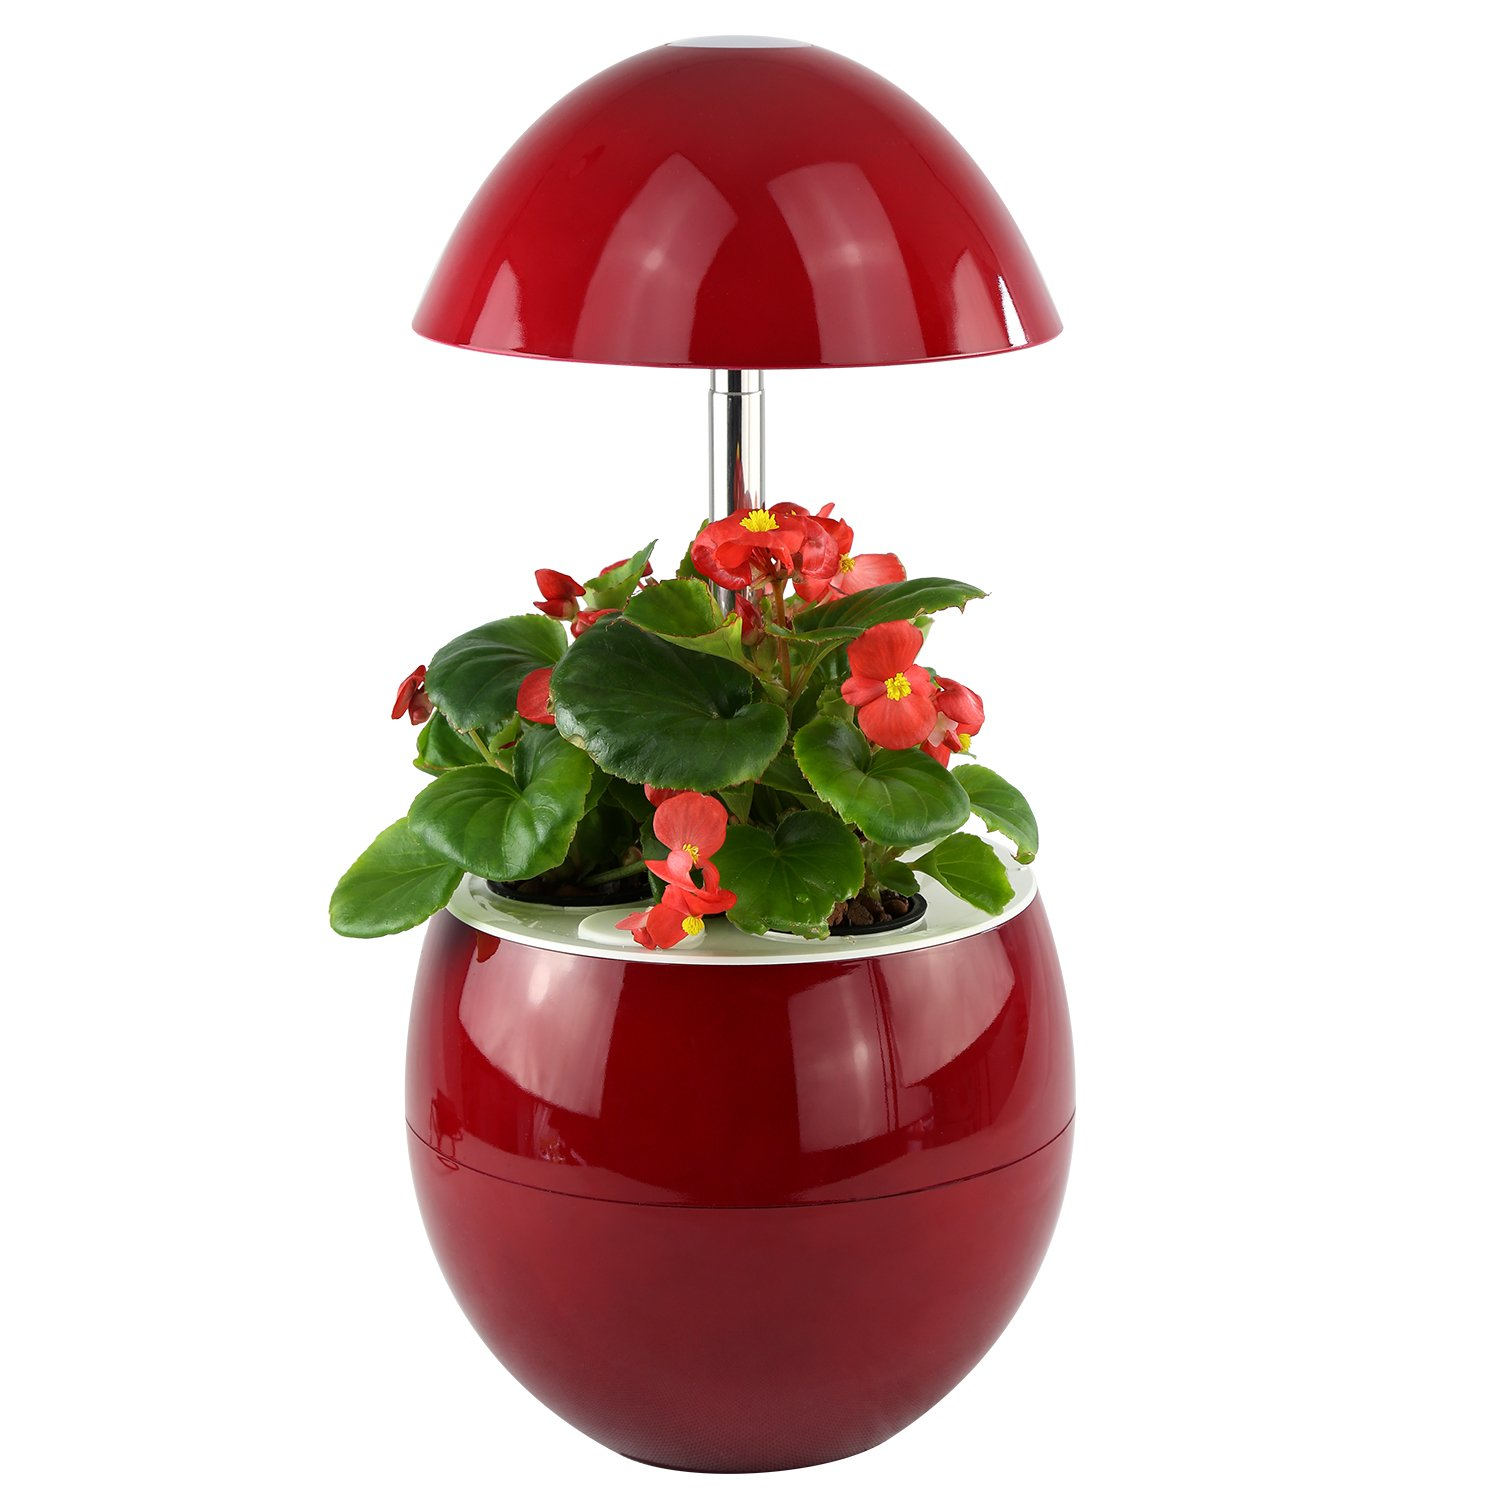 Decorative Indoor Garden Lamp Hydroponic Self Watering System, Complete Planter Pod Kit, Seeds & Led Light Grows Herbs, Flowers, Succulents in Kitchen or Any Room by Domestic Diva LA (Red) by Domestic Diva LA